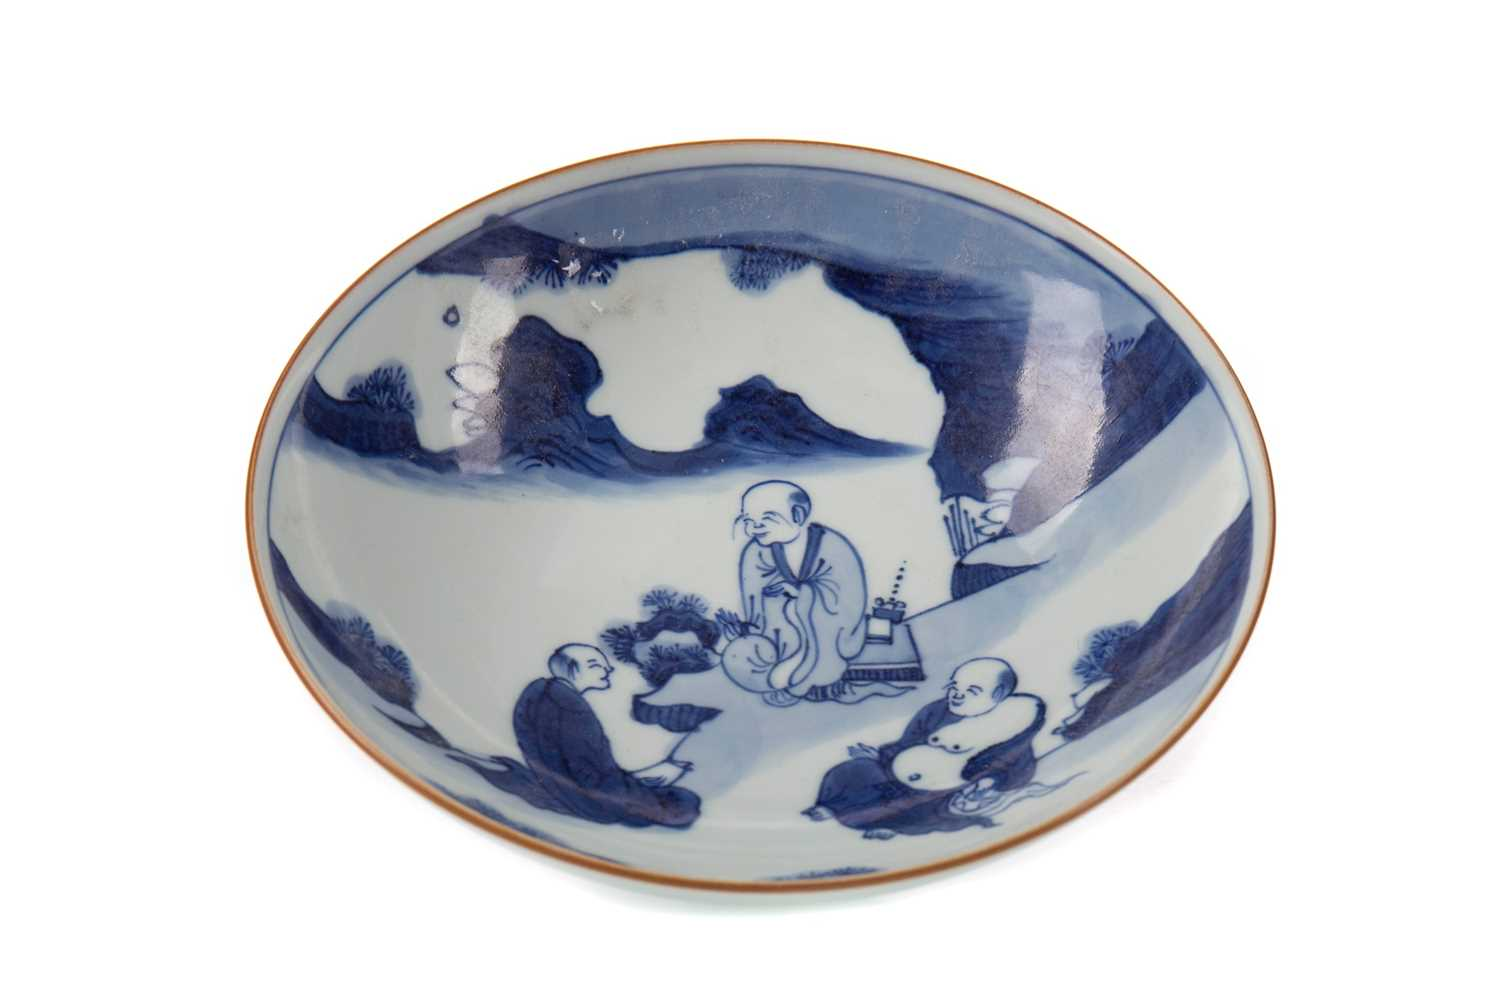 Lot 1685 - A 20TH CENTURY CHINESE BLUE AND WHITE BOWL